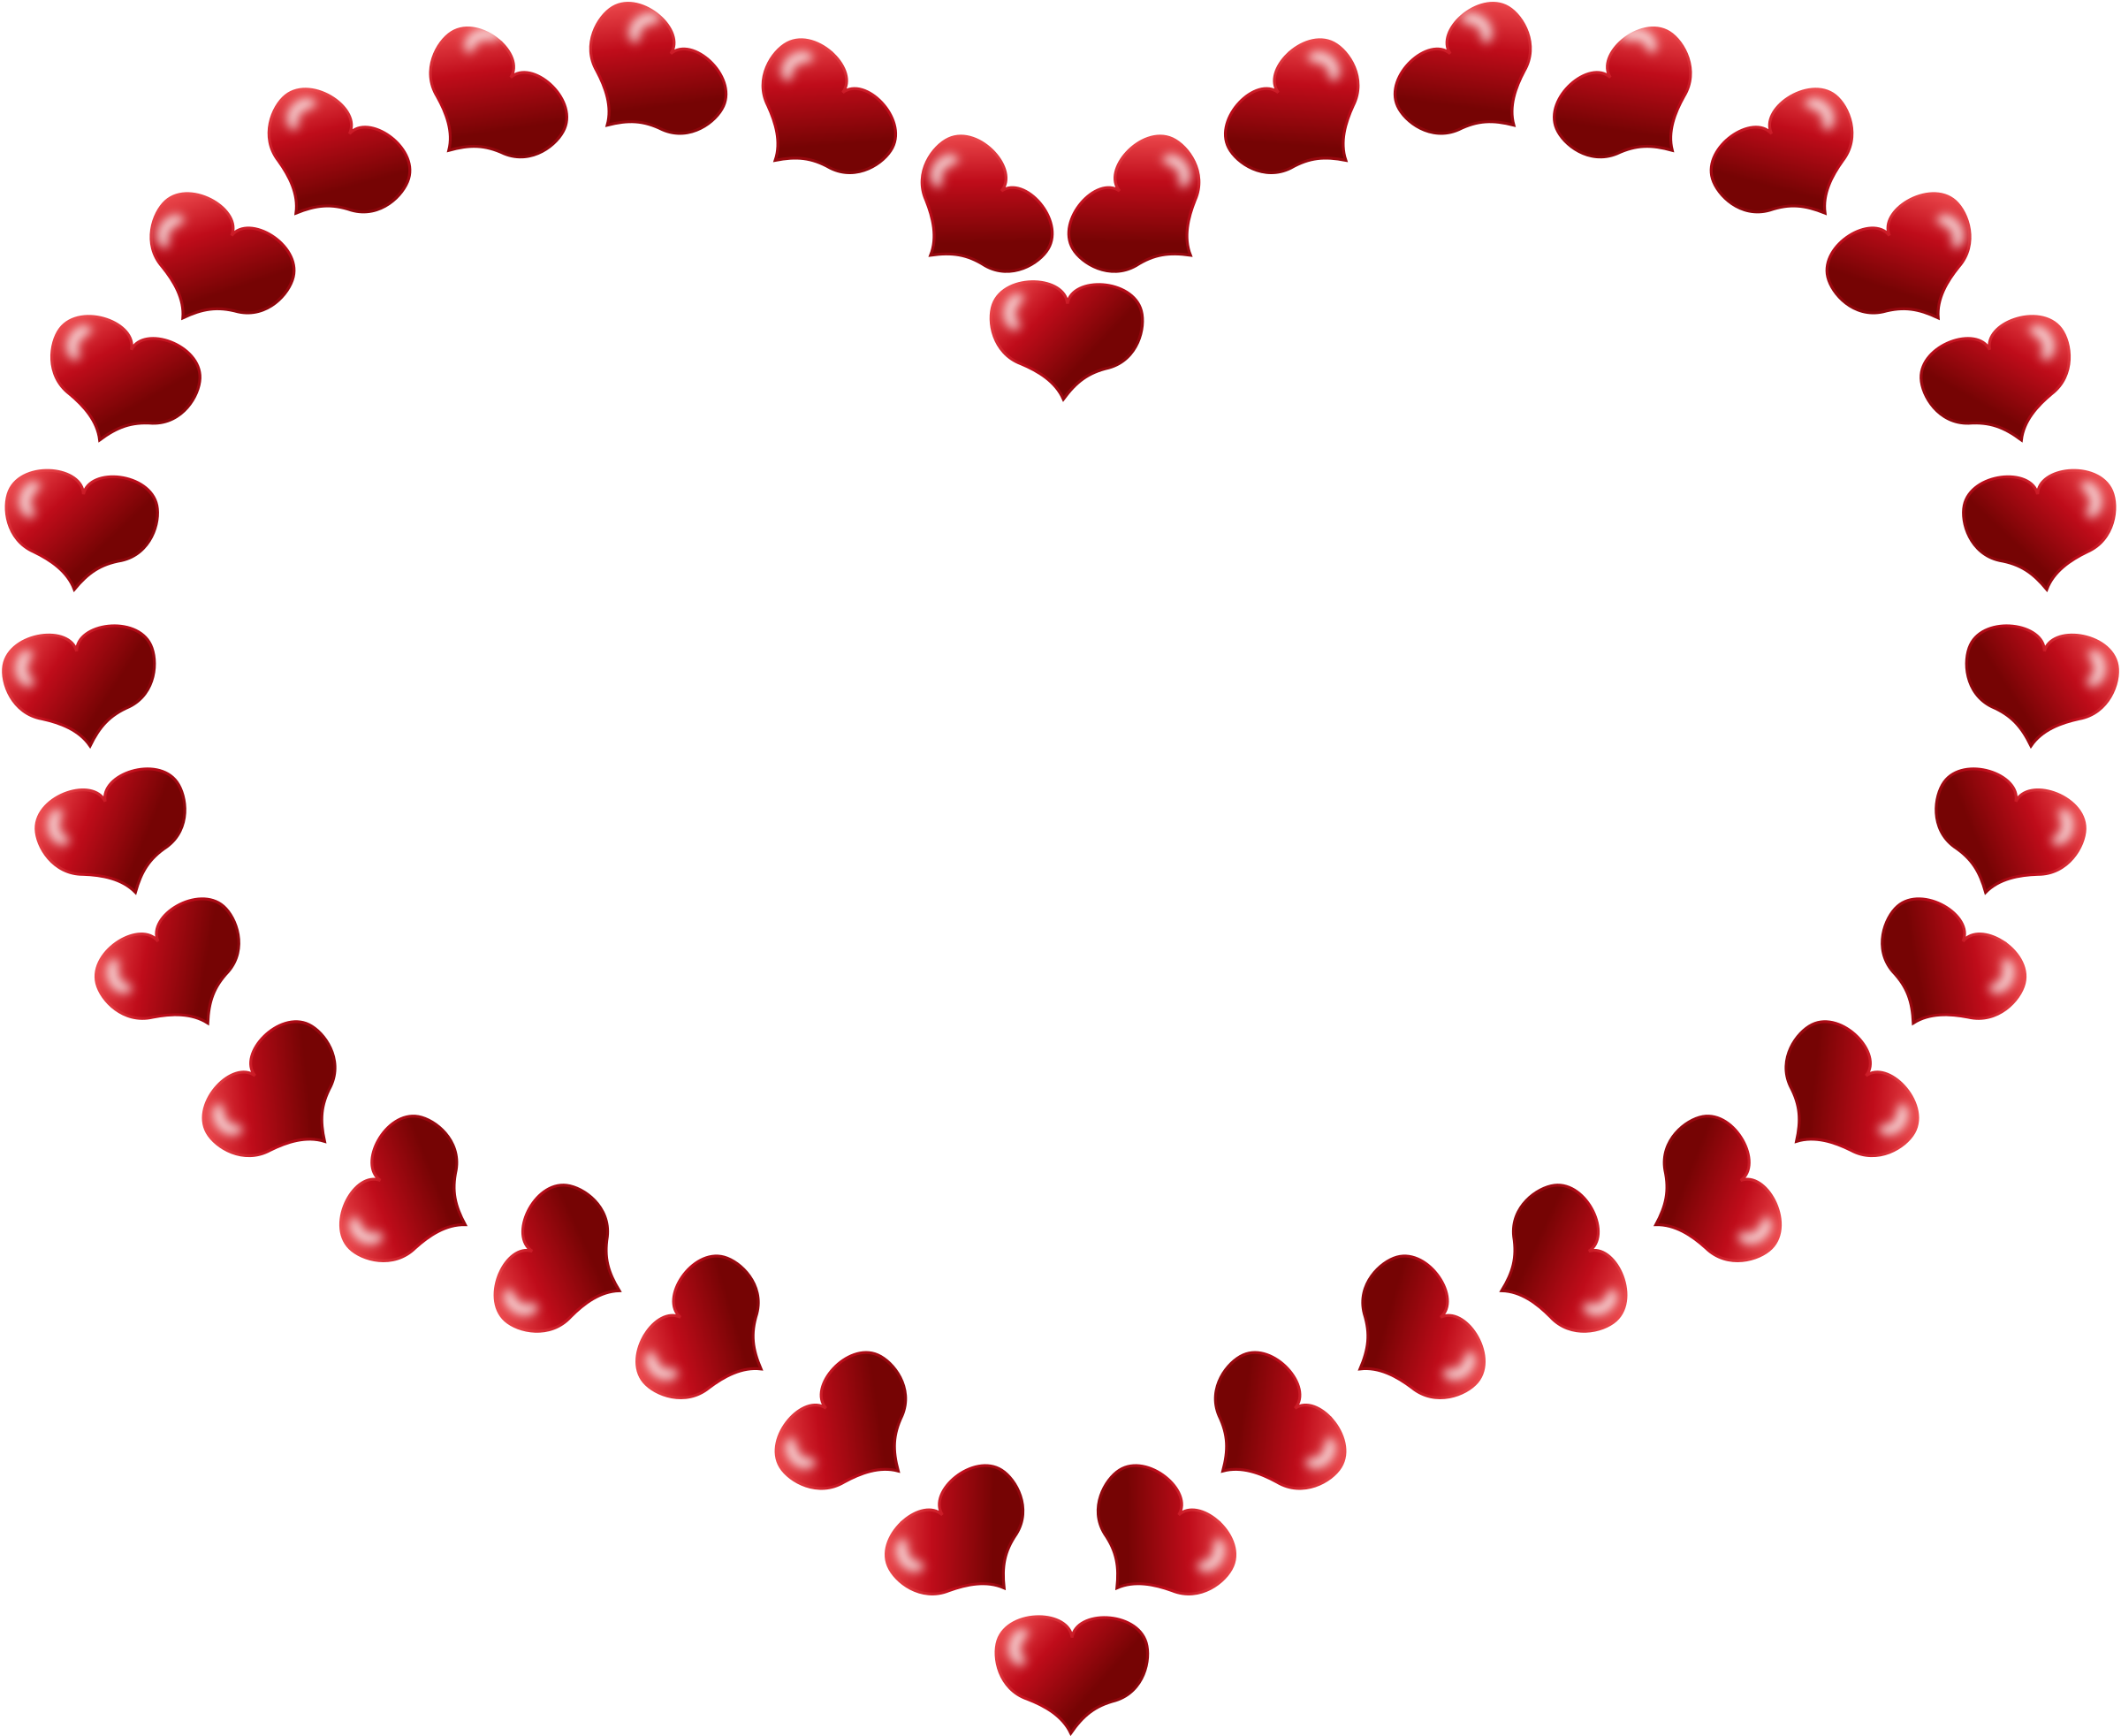 Red shaped border with. Heart shape png transparent jpg library library